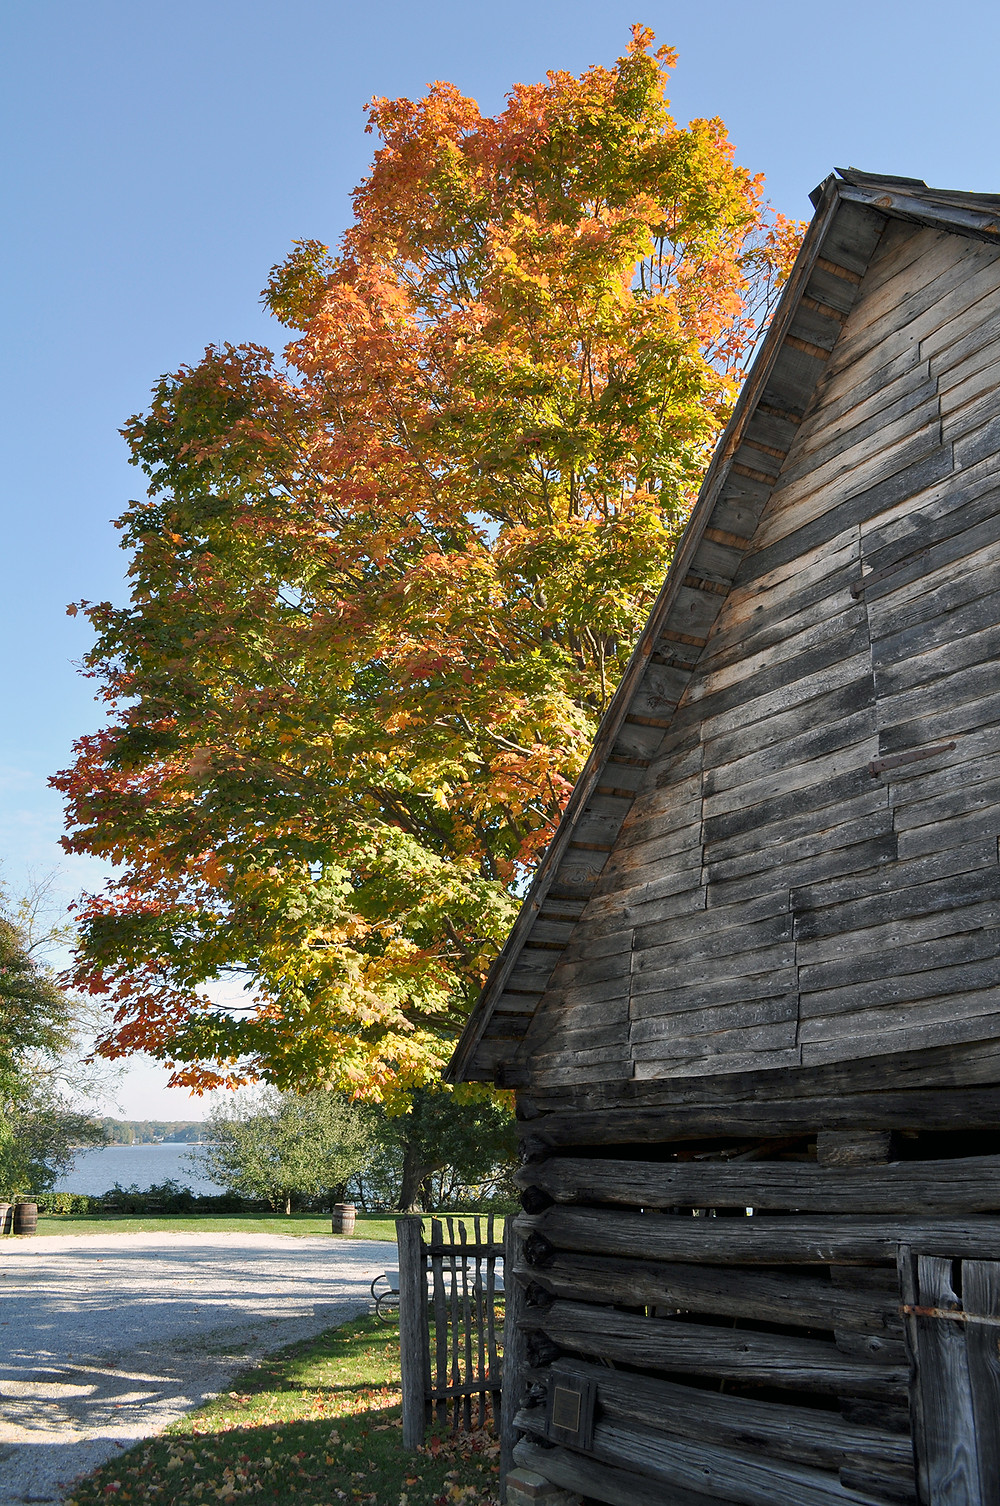 Tobacco Barn at London Town in the fall